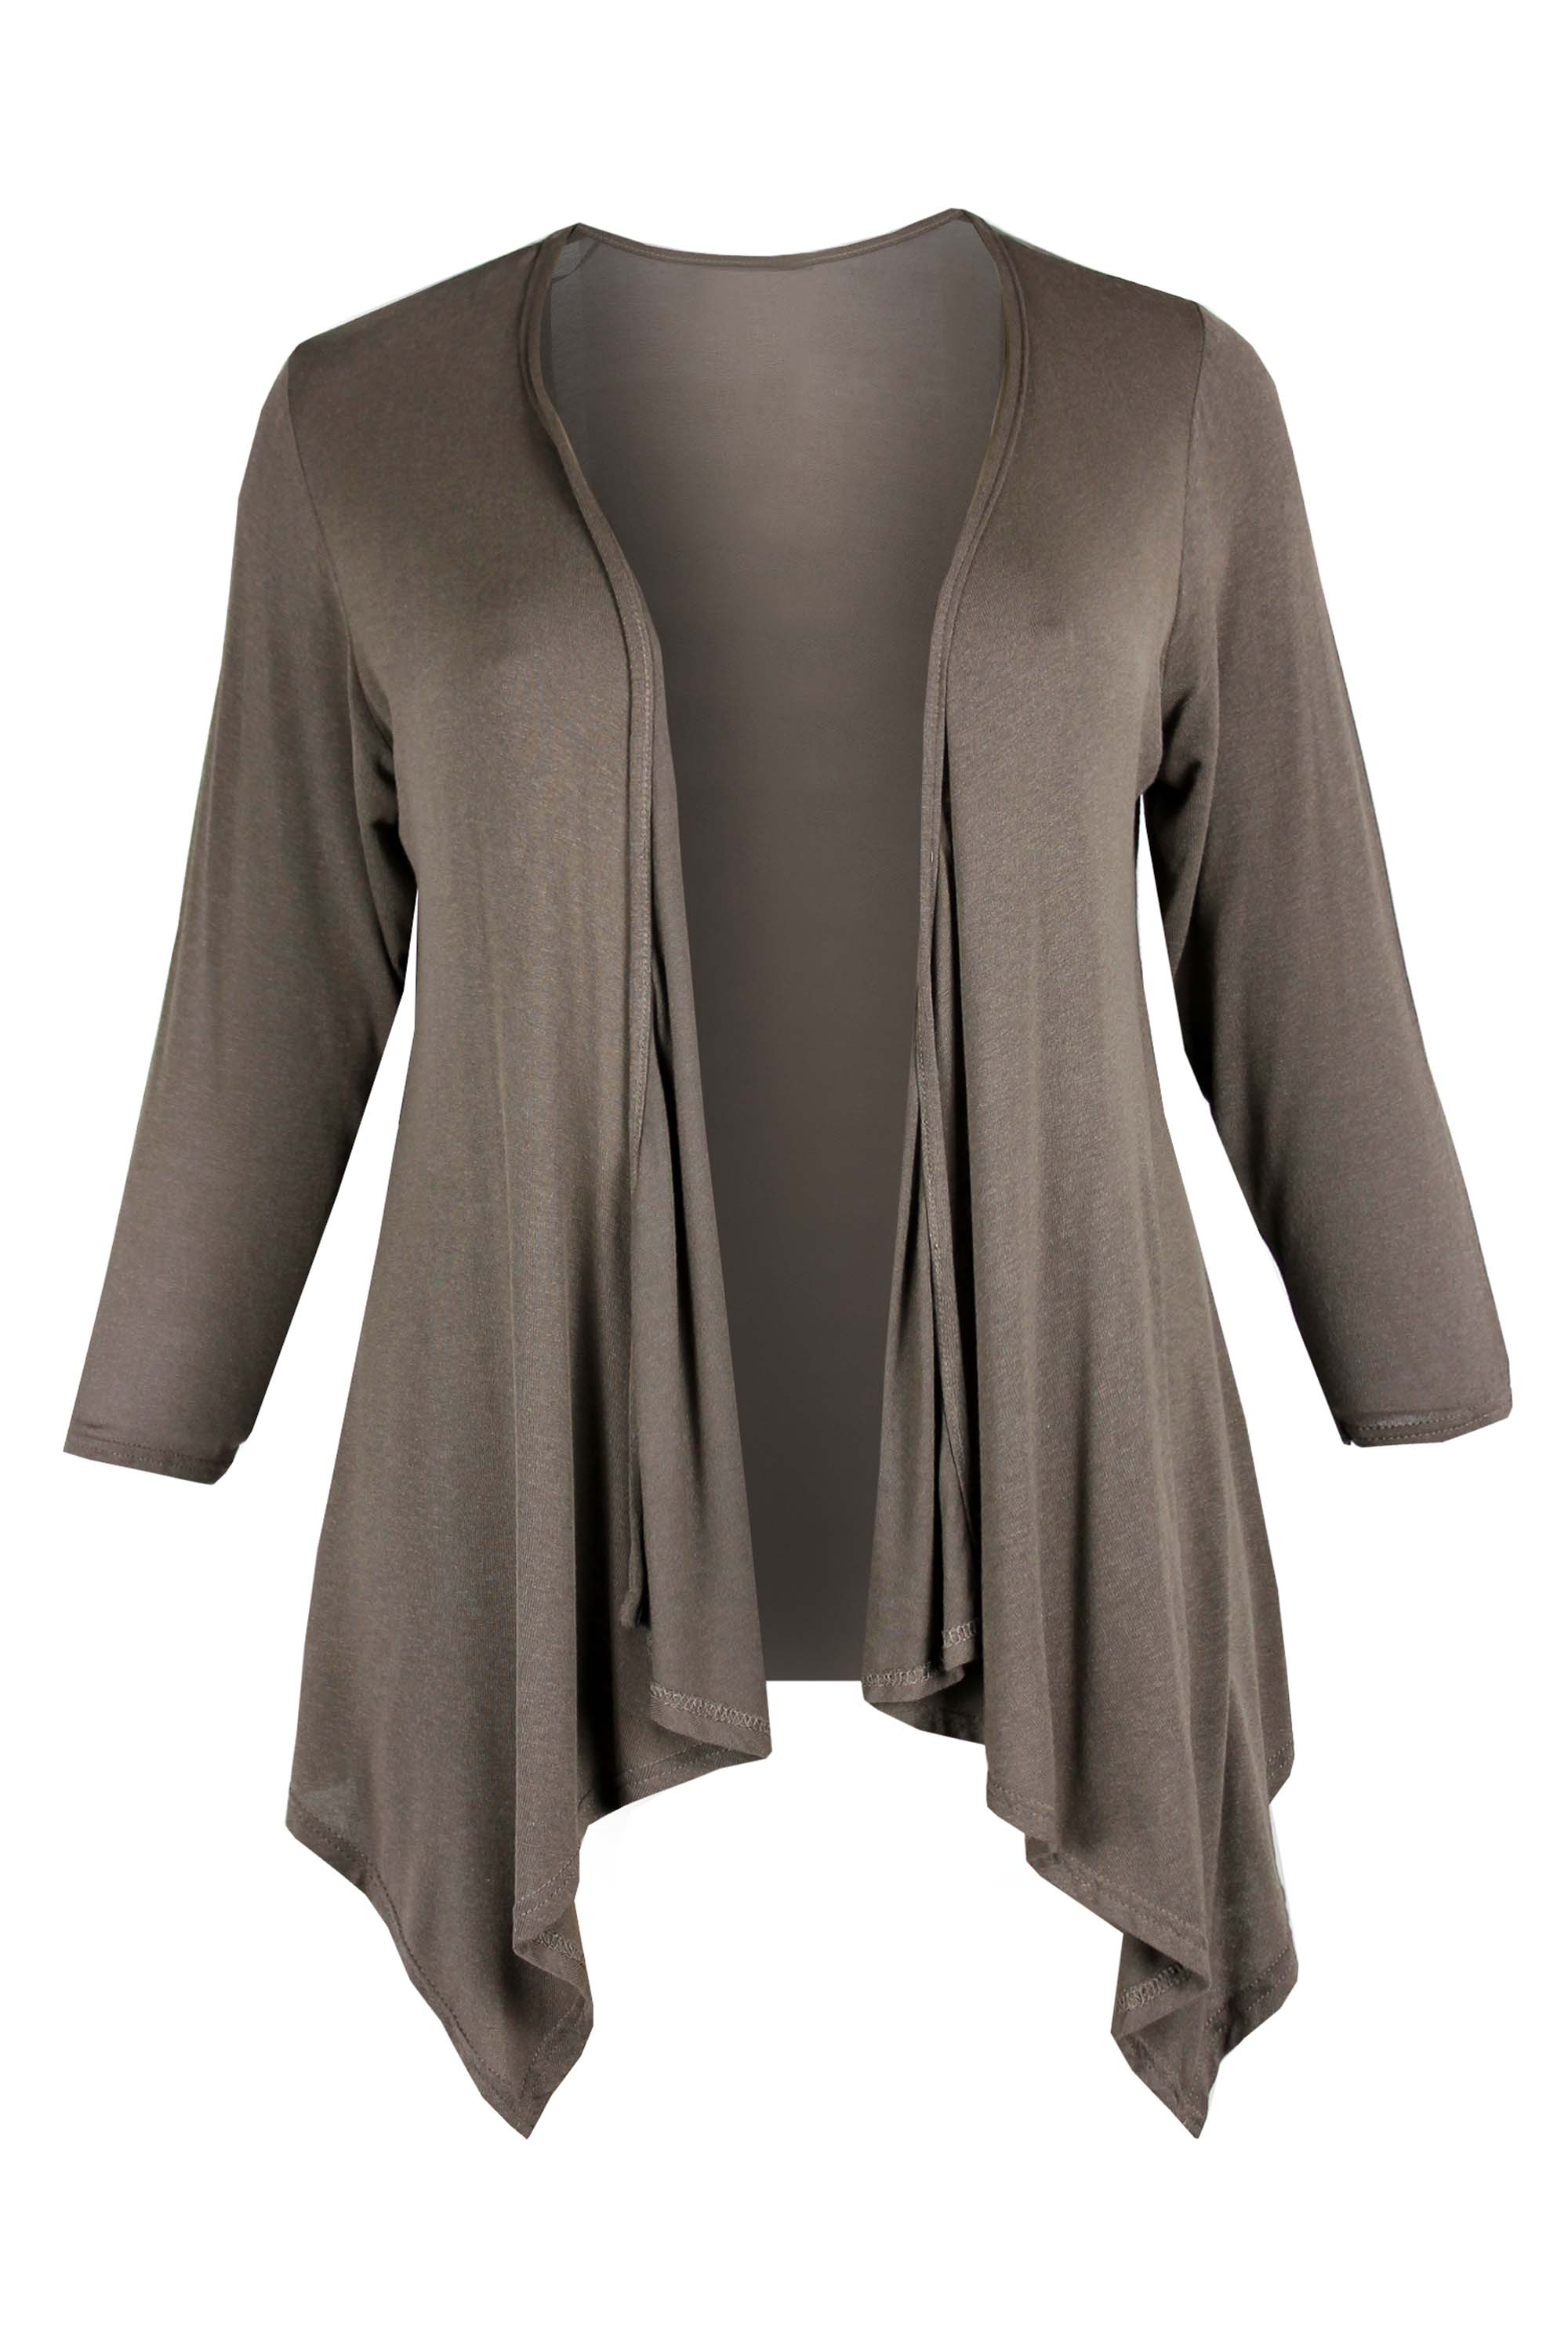 Product. This women's Irish waterfall cardigan by Irelands Eye is a favourite among all ages! It is soft, cosy and fashionable and perfect for someone who wants to wear over a shirt and leave to hang open.